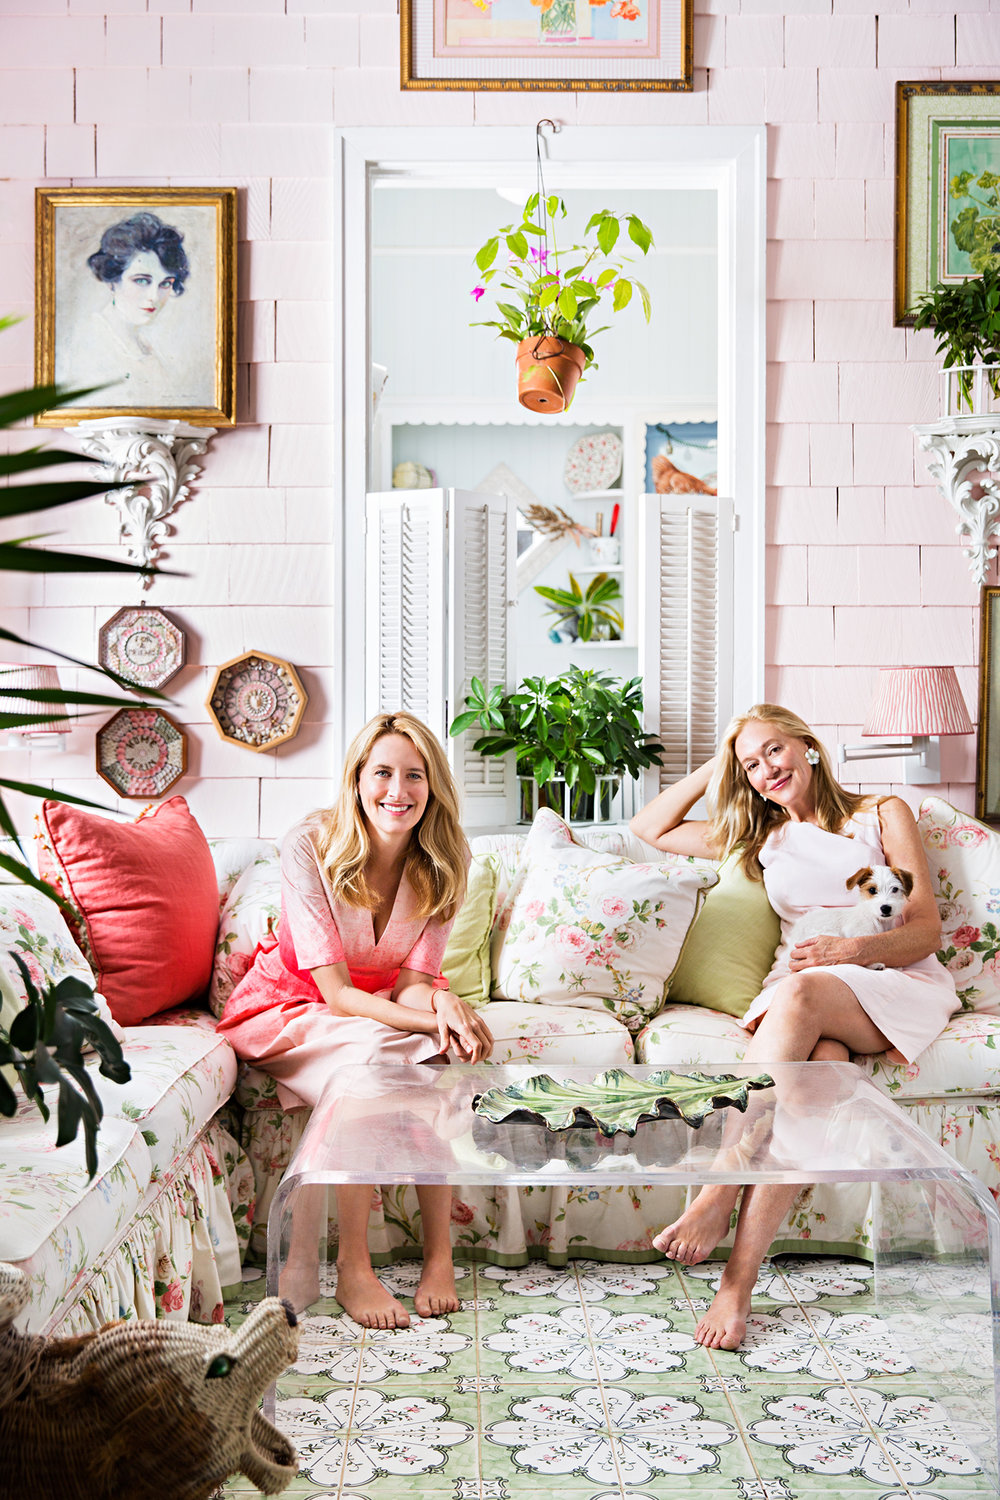 Celerie Kemble and Mimi McMackin | Architectural Digest